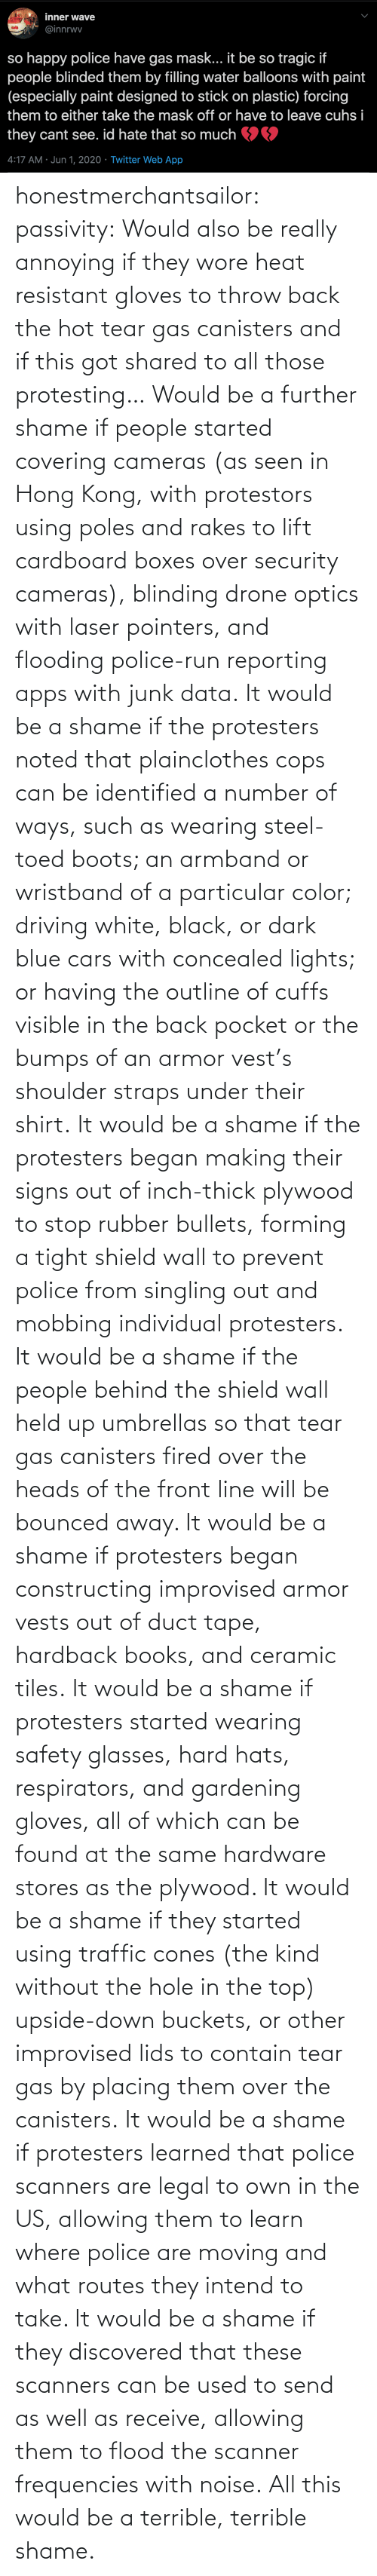 wikipedia: honestmerchantsailor: passivity: Would also be really annoying if they wore heat resistant gloves to throw back the hot tear gas canisters and if this got shared to all those protesting… Would be a further shame if people started covering cameras (as seen in Hong Kong, with protestors using poles and rakes to lift cardboard boxes over security cameras), blinding drone optics with laser pointers, and flooding police-run reporting apps with junk data. It would be a shame if the protesters noted that plainclothes cops can be identified a number of ways, such as wearing steel-toed boots; an armband or wristband of a particular color; driving white, black, or dark blue cars with concealed lights; or having the outline of cuffs visible in the back pocket or the bumps of an armor vest's shoulder straps under their shirt. It would be a shame if the protesters began making their signs out of inch-thick plywood to stop rubber bullets, forming a tight shield wall to prevent police from singling out and mobbing individual protesters. It would be a shame if the people behind the shield wall held up umbrellas so that tear gas canisters fired over the heads of the front line will be bounced away. It would be a shame if protesters began constructing improvised armor vests out of duct tape, hardback books, and ceramic tiles. It would be a shame if protesters started wearing safety glasses, hard hats, respirators, and gardening gloves, all of which can be found at the same hardware stores as the plywood. It would be a shame if they started using traffic cones (the kind without the hole in the top) upside-down buckets, or other improvised lids to contain tear gas by placing them over the canisters. It would be a shame if protesters learned that police scanners are legal to own in the US, allowing them to learn where police are moving and what routes they intend to take. It would be a shame if they discovered that these scanners can be used to send as well as receive, allowing them to flood the scanner frequencies with noise. All this would be a terrible, terrible shame.